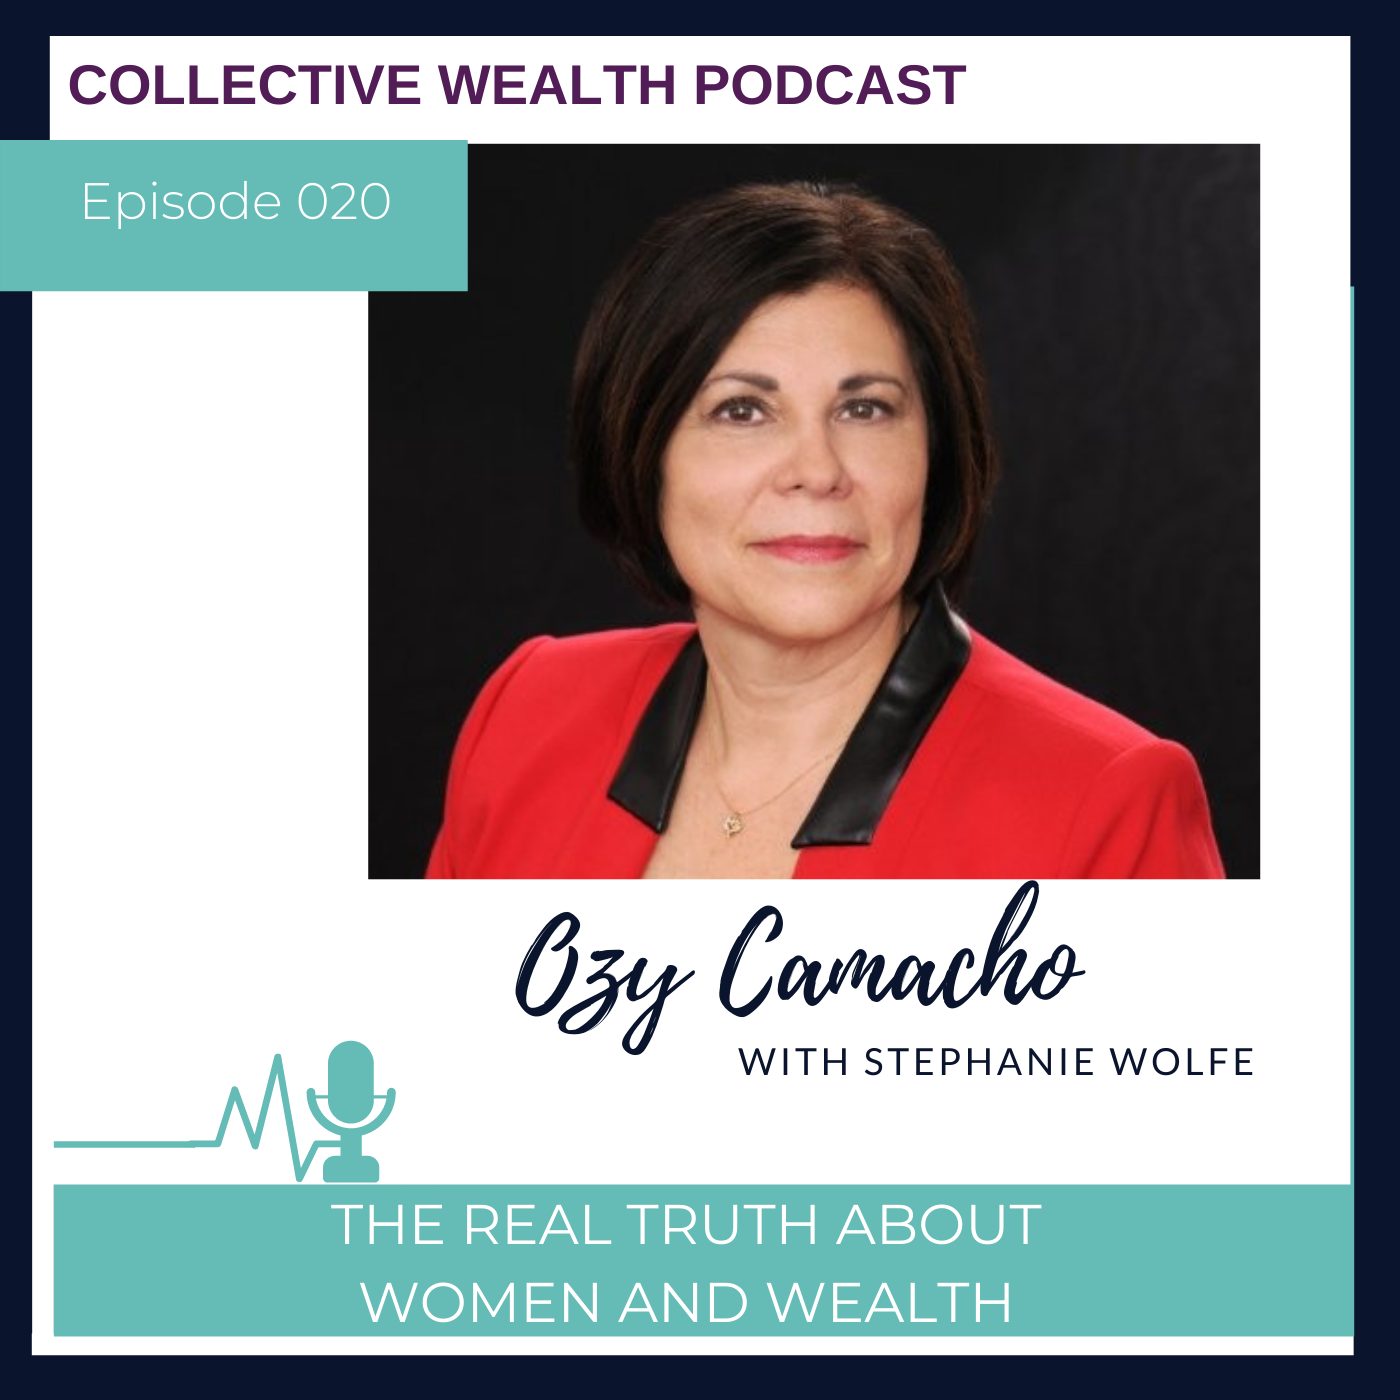 S1E20 The Real Truth About Women and Wealth